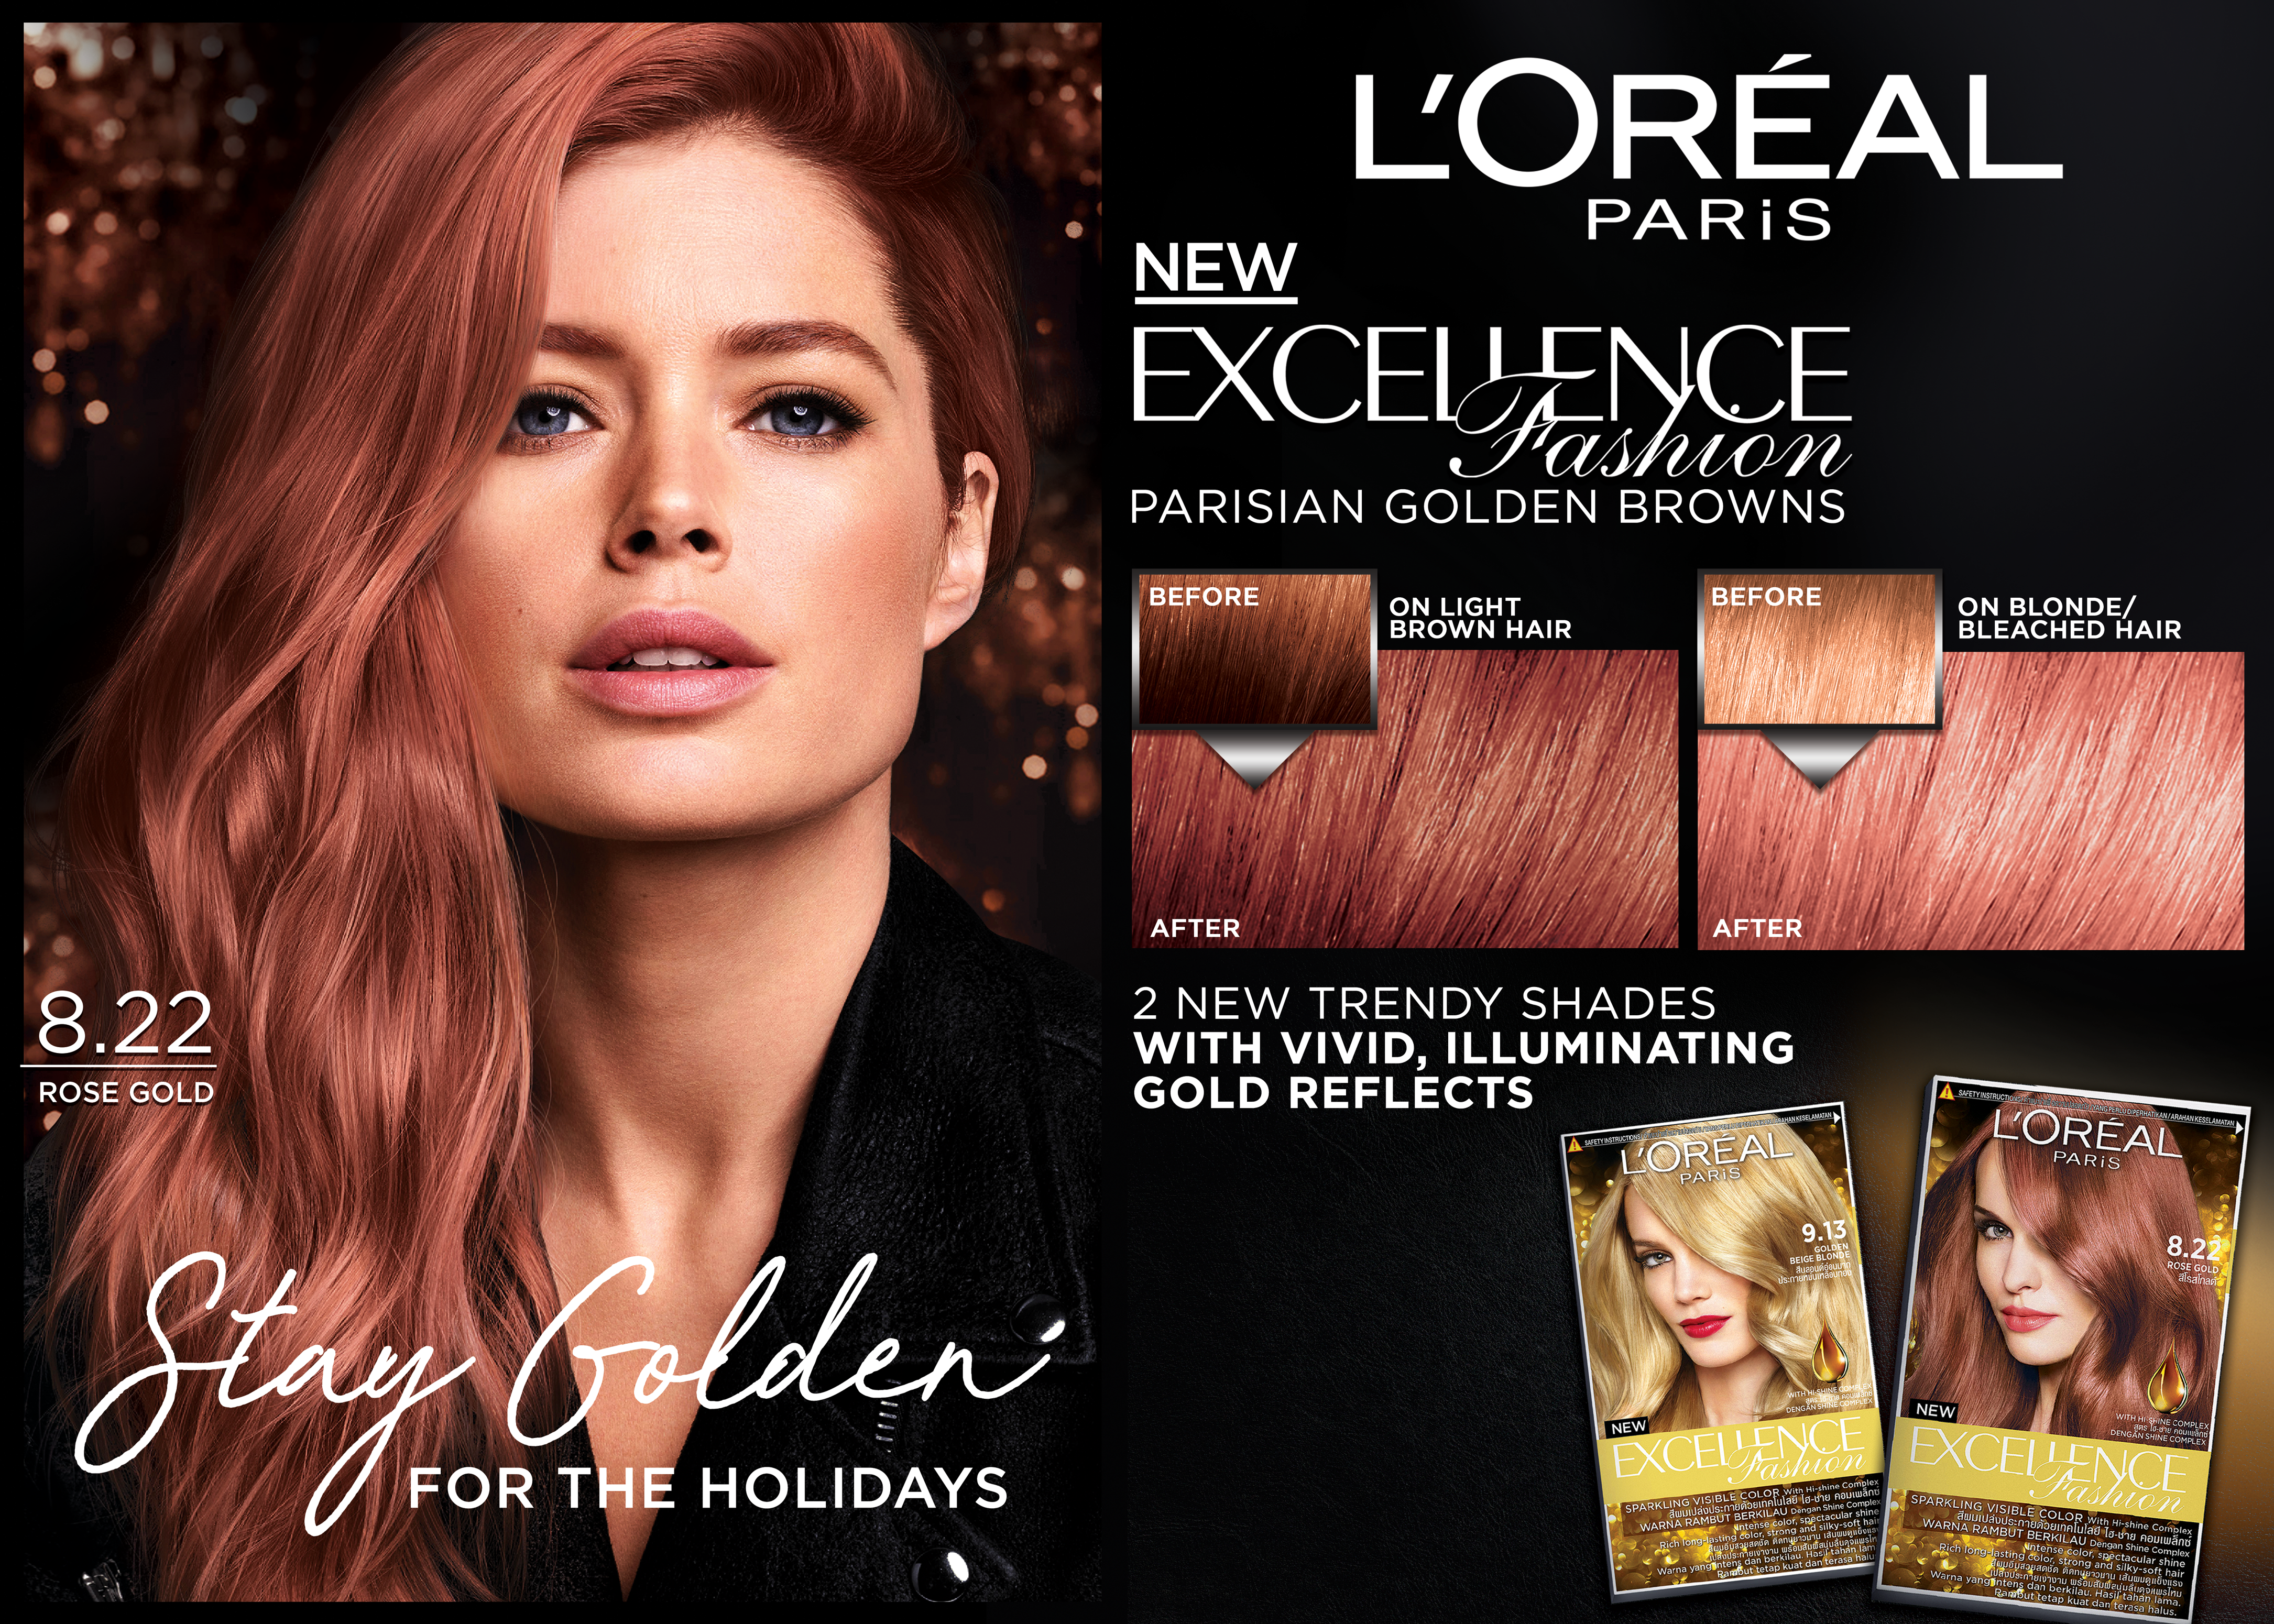 Cop The Hottest Hair Color Trend This Holiday Season With L Oreal